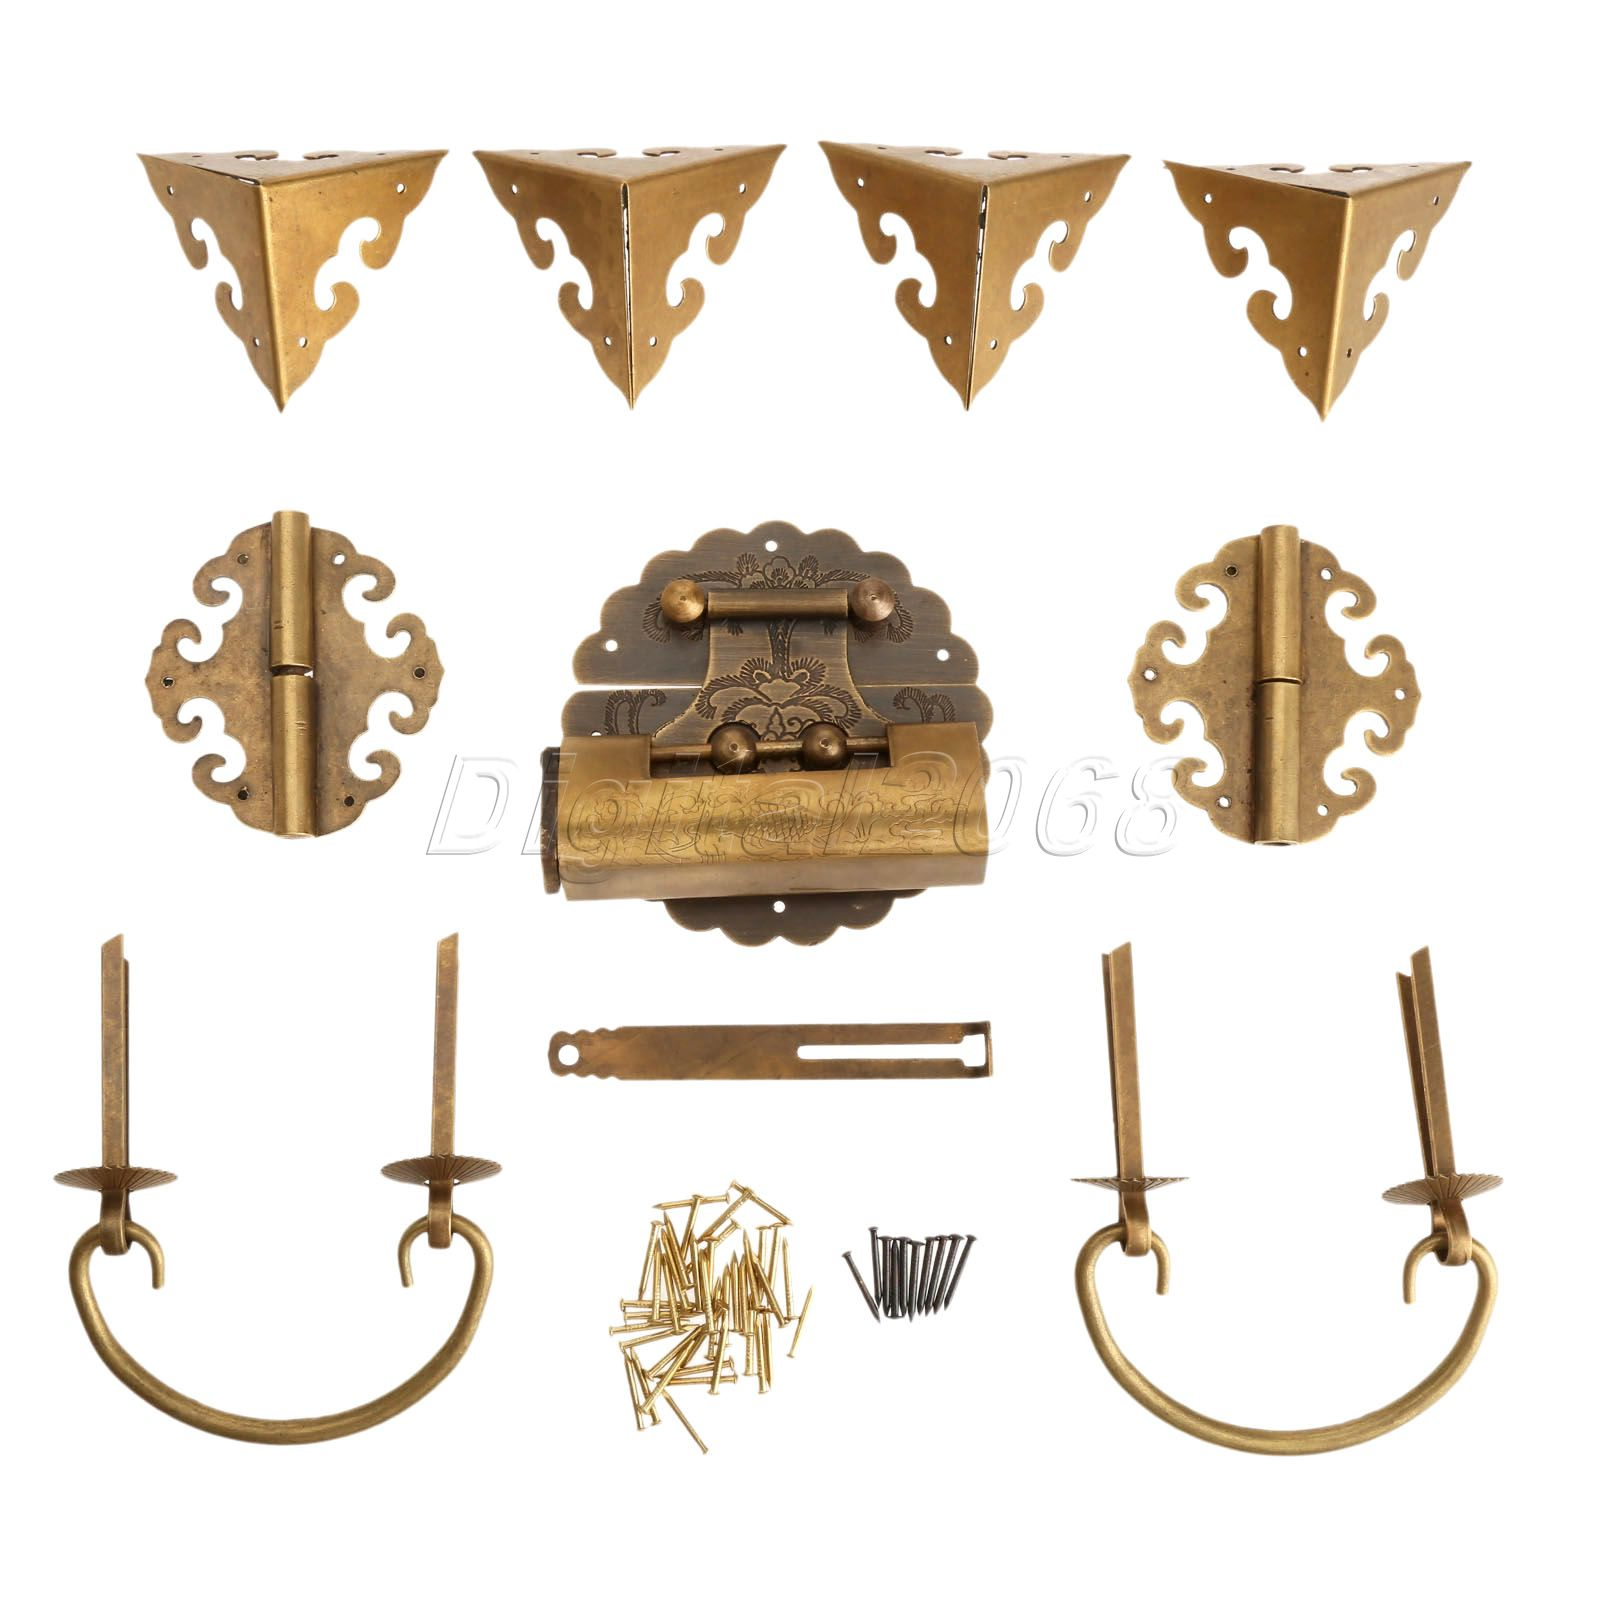 Hot Good Quality 9pcs/set Brass Chinese Furniture Hardware Chest Hinge Trunk Latch Box Handle Corner Plate with Nails<br>